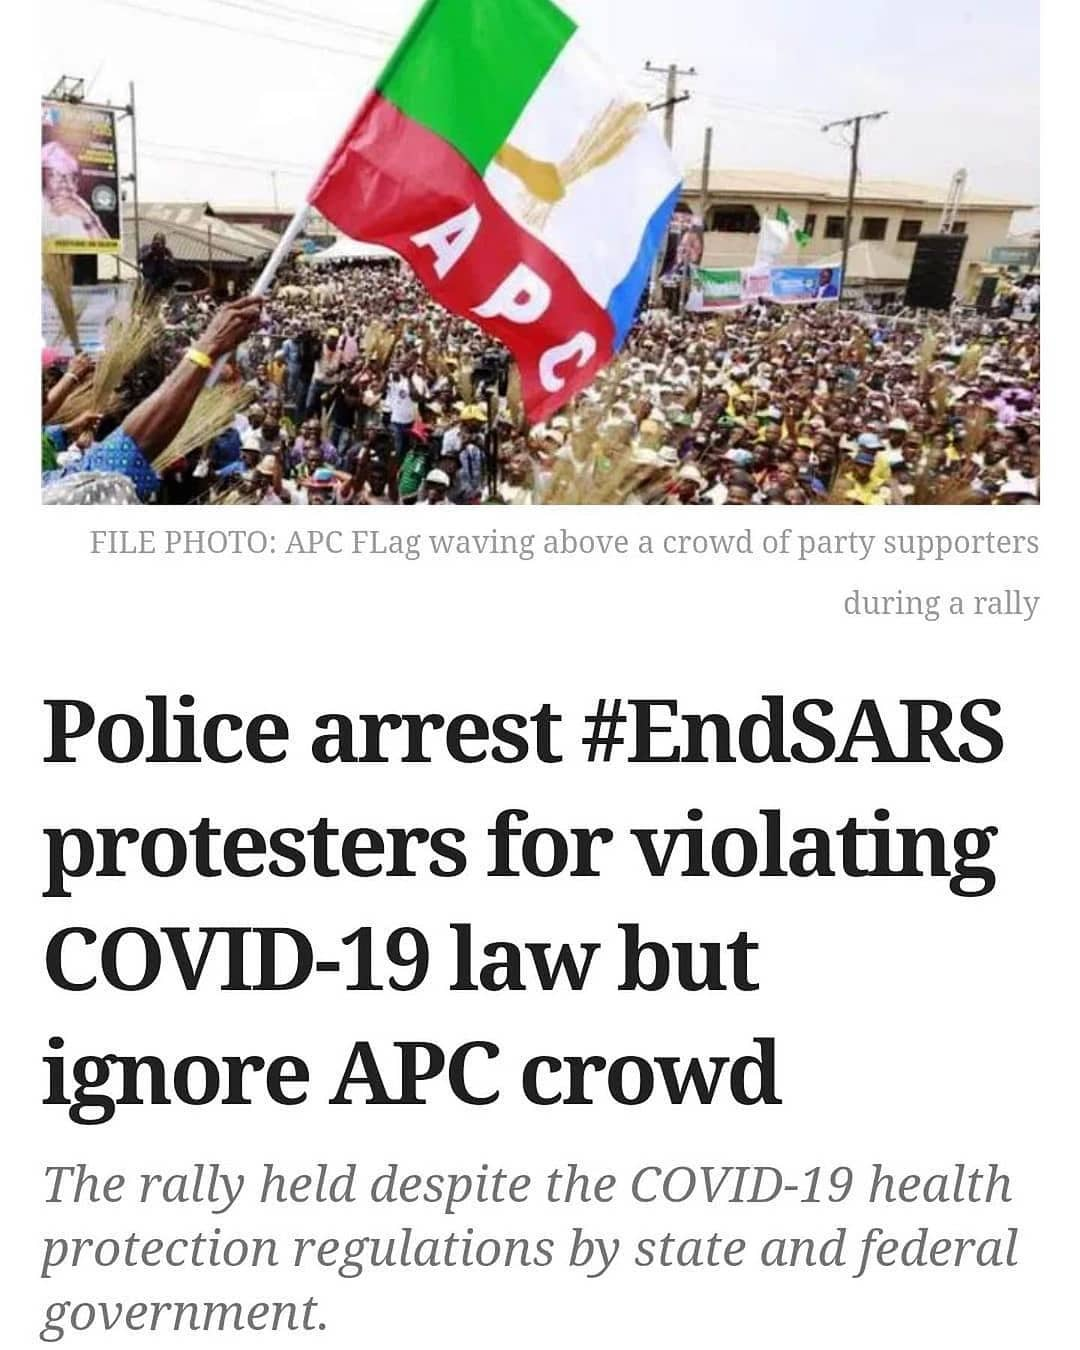 "Hundreds of members of the All Progressives Congress in Lagos on Friday crowded into a street in Agege for a sensitisation rally, in clear violation of the state's COVID-19 law.  In a video obtained by PREMIUM TIMES, top party members of the party, including Mudashiru Obasa, the speaker of the Lagos State House of Assembly, were in attendance.  The rally held despite the ban on the gathering of more than 50 persons by the Lagos State Infectious Disease law and the COVID-19 Health Protection Regulations recently passed by President Muhammadu Buhari.  In the video, the crowd at the rally sang in honour of Mr Obasa, who, as Speaker of the House, is the number three man in the Lagos State government.  Despite playing a key role in the passing of the Lagos Infectious Diseases (Emergency Prevention) Regulations, 2020, Mr Obasa addressed the crowd, who flagrantly violated COVID-19 protocols.  Speaking in the Yoruba language, the Speaker said there is a need for them to support the state government an  ""Let us not fight one another, we need to dwell in love and also support the party,"" he said in the opening of the video, with the crowd singing his praises.  He also told the party members that the state governor will open the Pen Cinema bridge, which is near completion ""within the shortest time.""  ""We are hopeful that the Pen Cinema Bridge will bring development to the Agege Constituency. We need to appreciate our governor and also support him because government is for everybody.  ""We need to support elected officeholders. This bridge, for instance, if we see bad elements in the society trying to damage it, we should do our best to stop them,"" Mr Obasa said.  The rally held on Friday, a day when markets across the state were shut to honour Lateef Jakande, the first civilian governor of Lagos State, who passed away last week. : @premiumtimes"